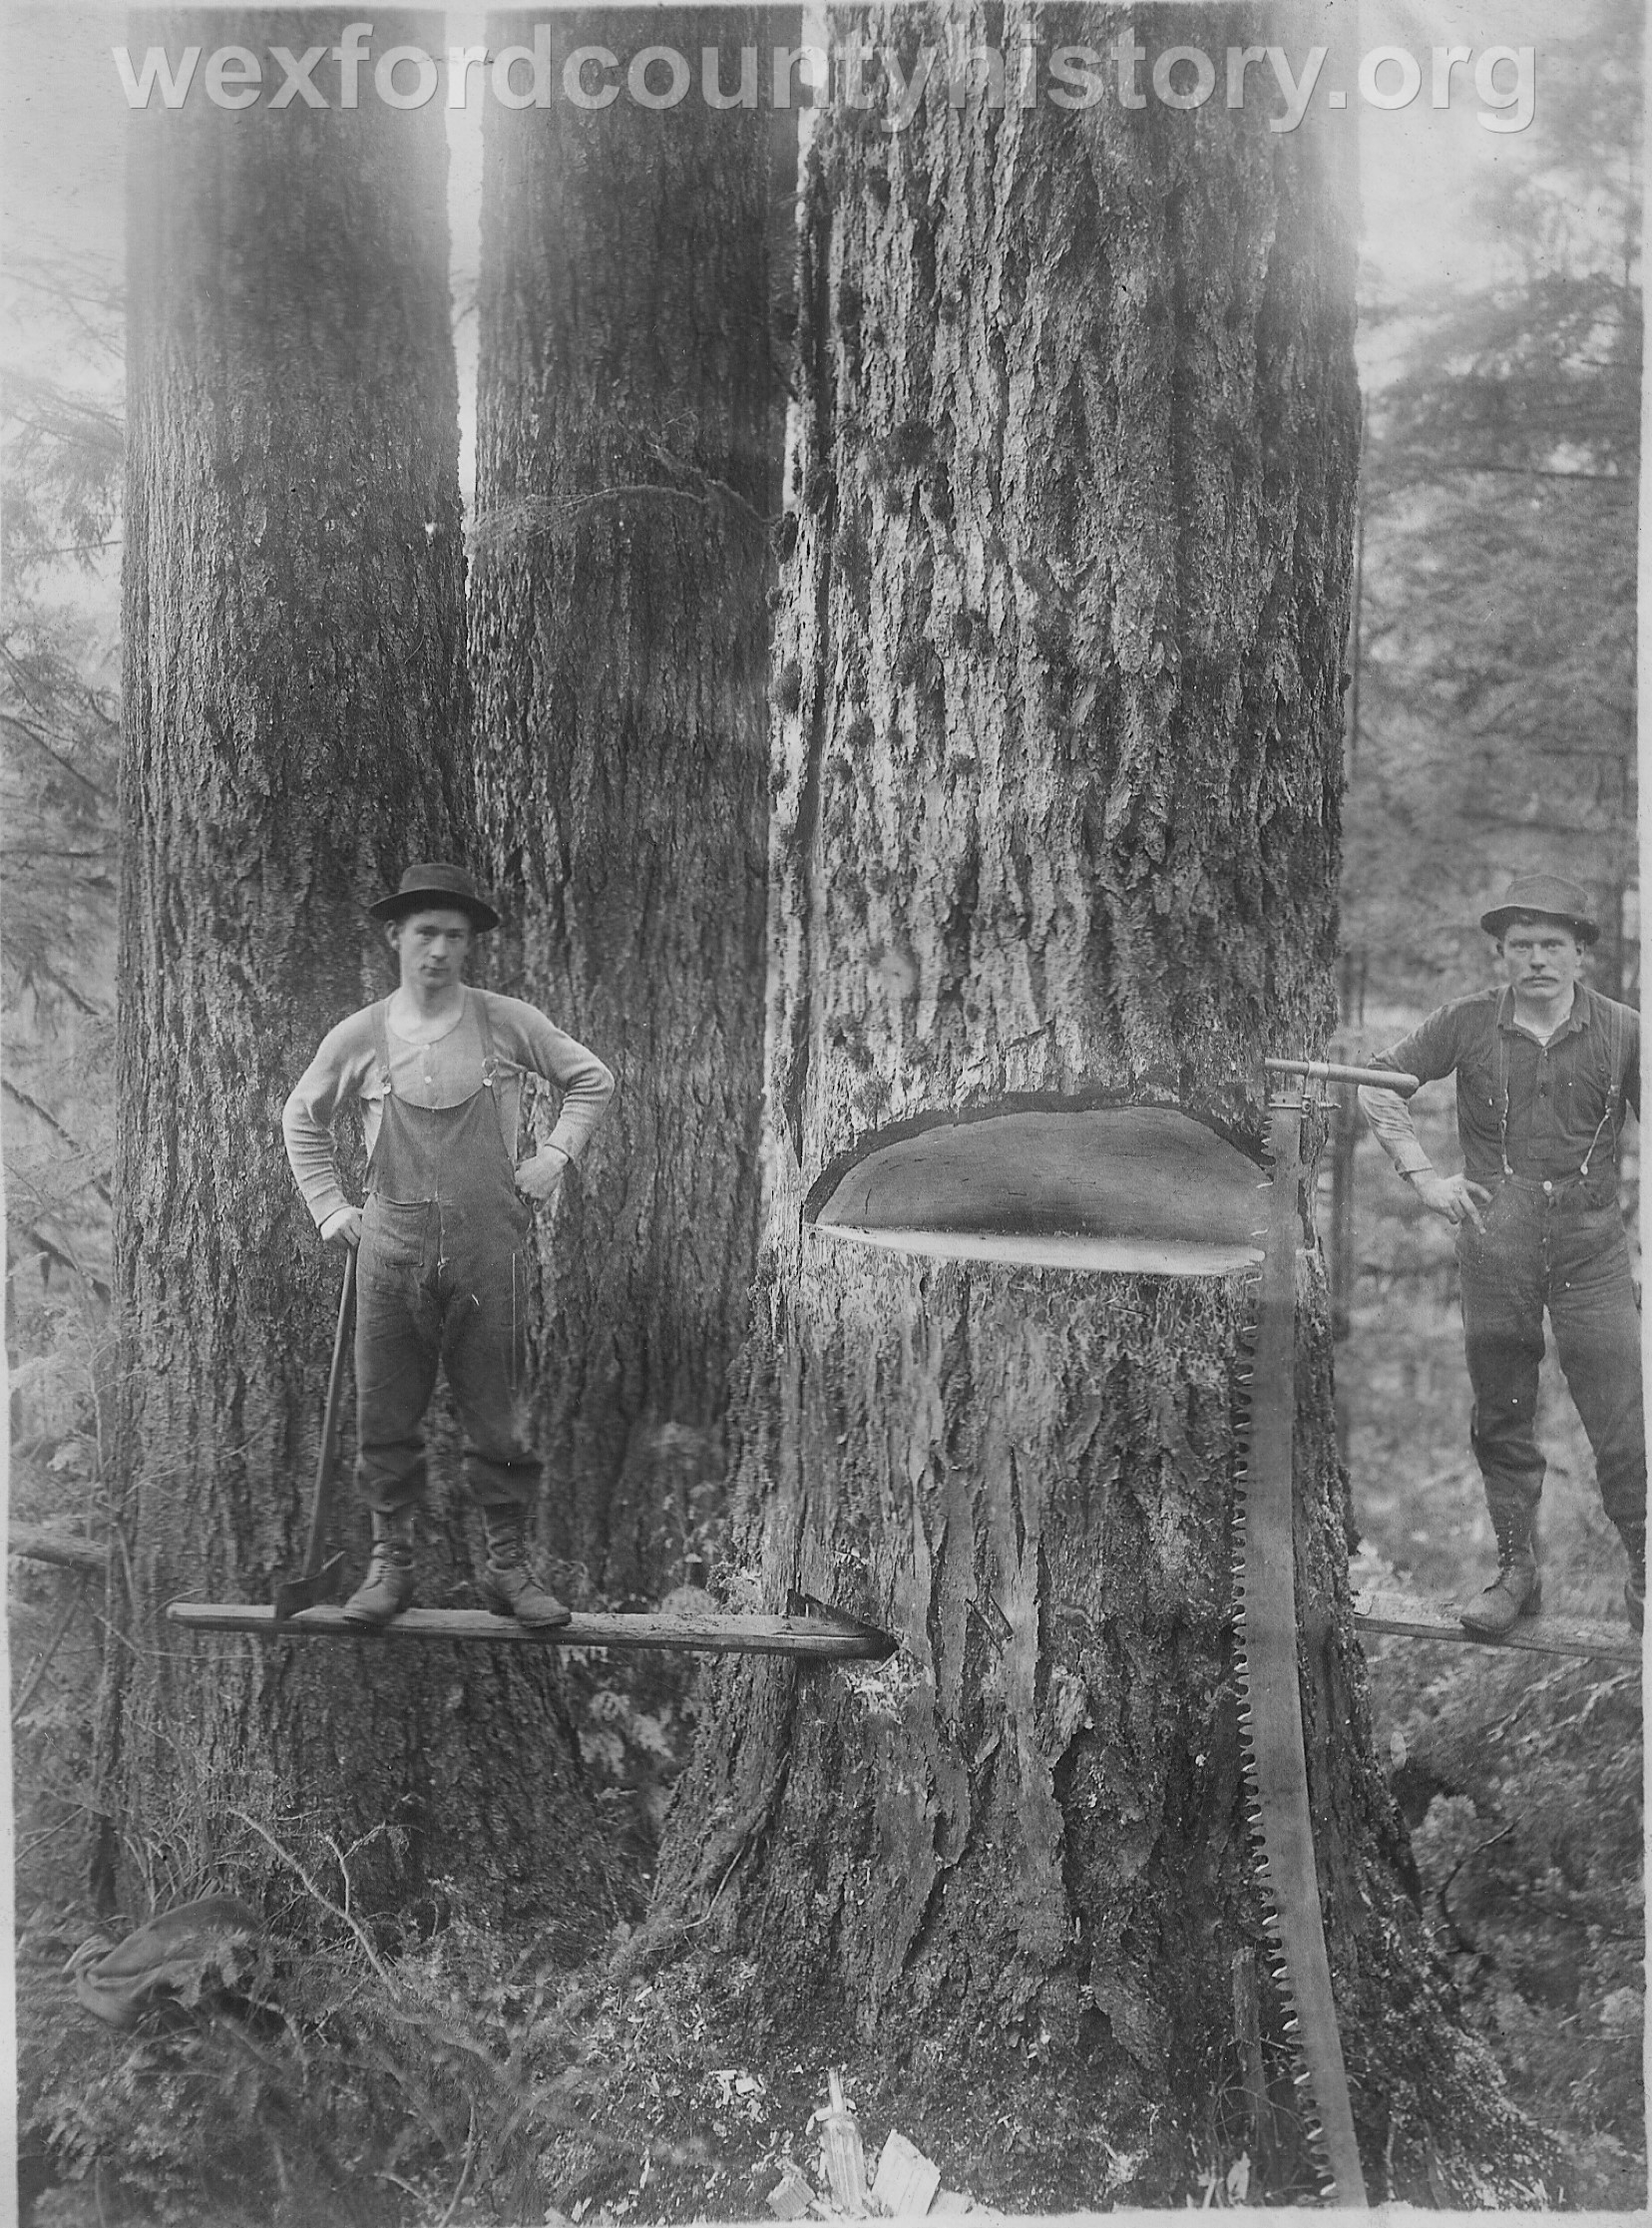 Wexford-County-Lumber-Timber-Harvest-Circa-1890s-8